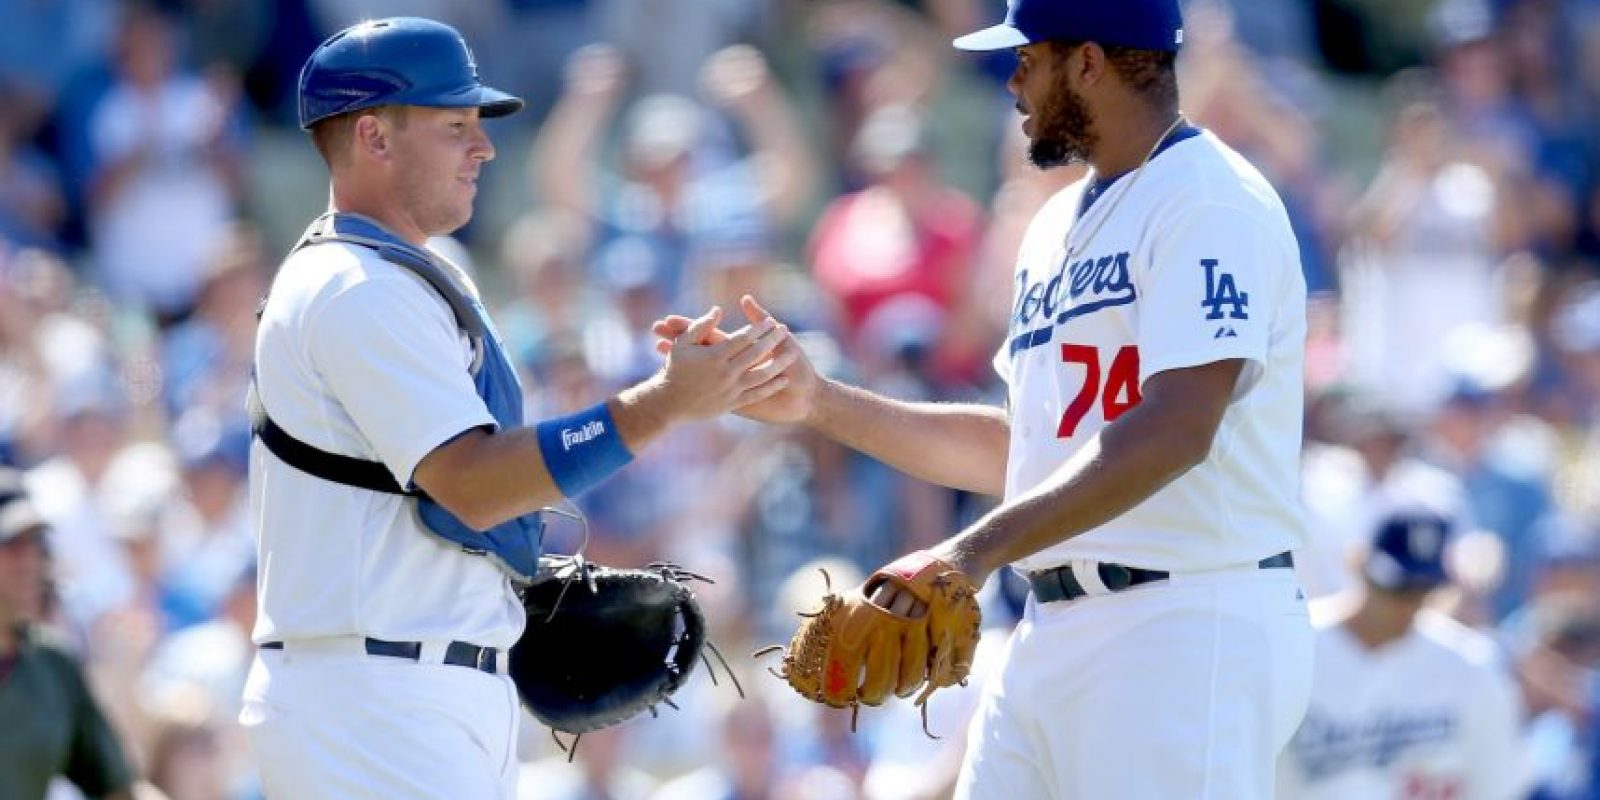 9. Los Angeles Dodgers Foto: Getty Images